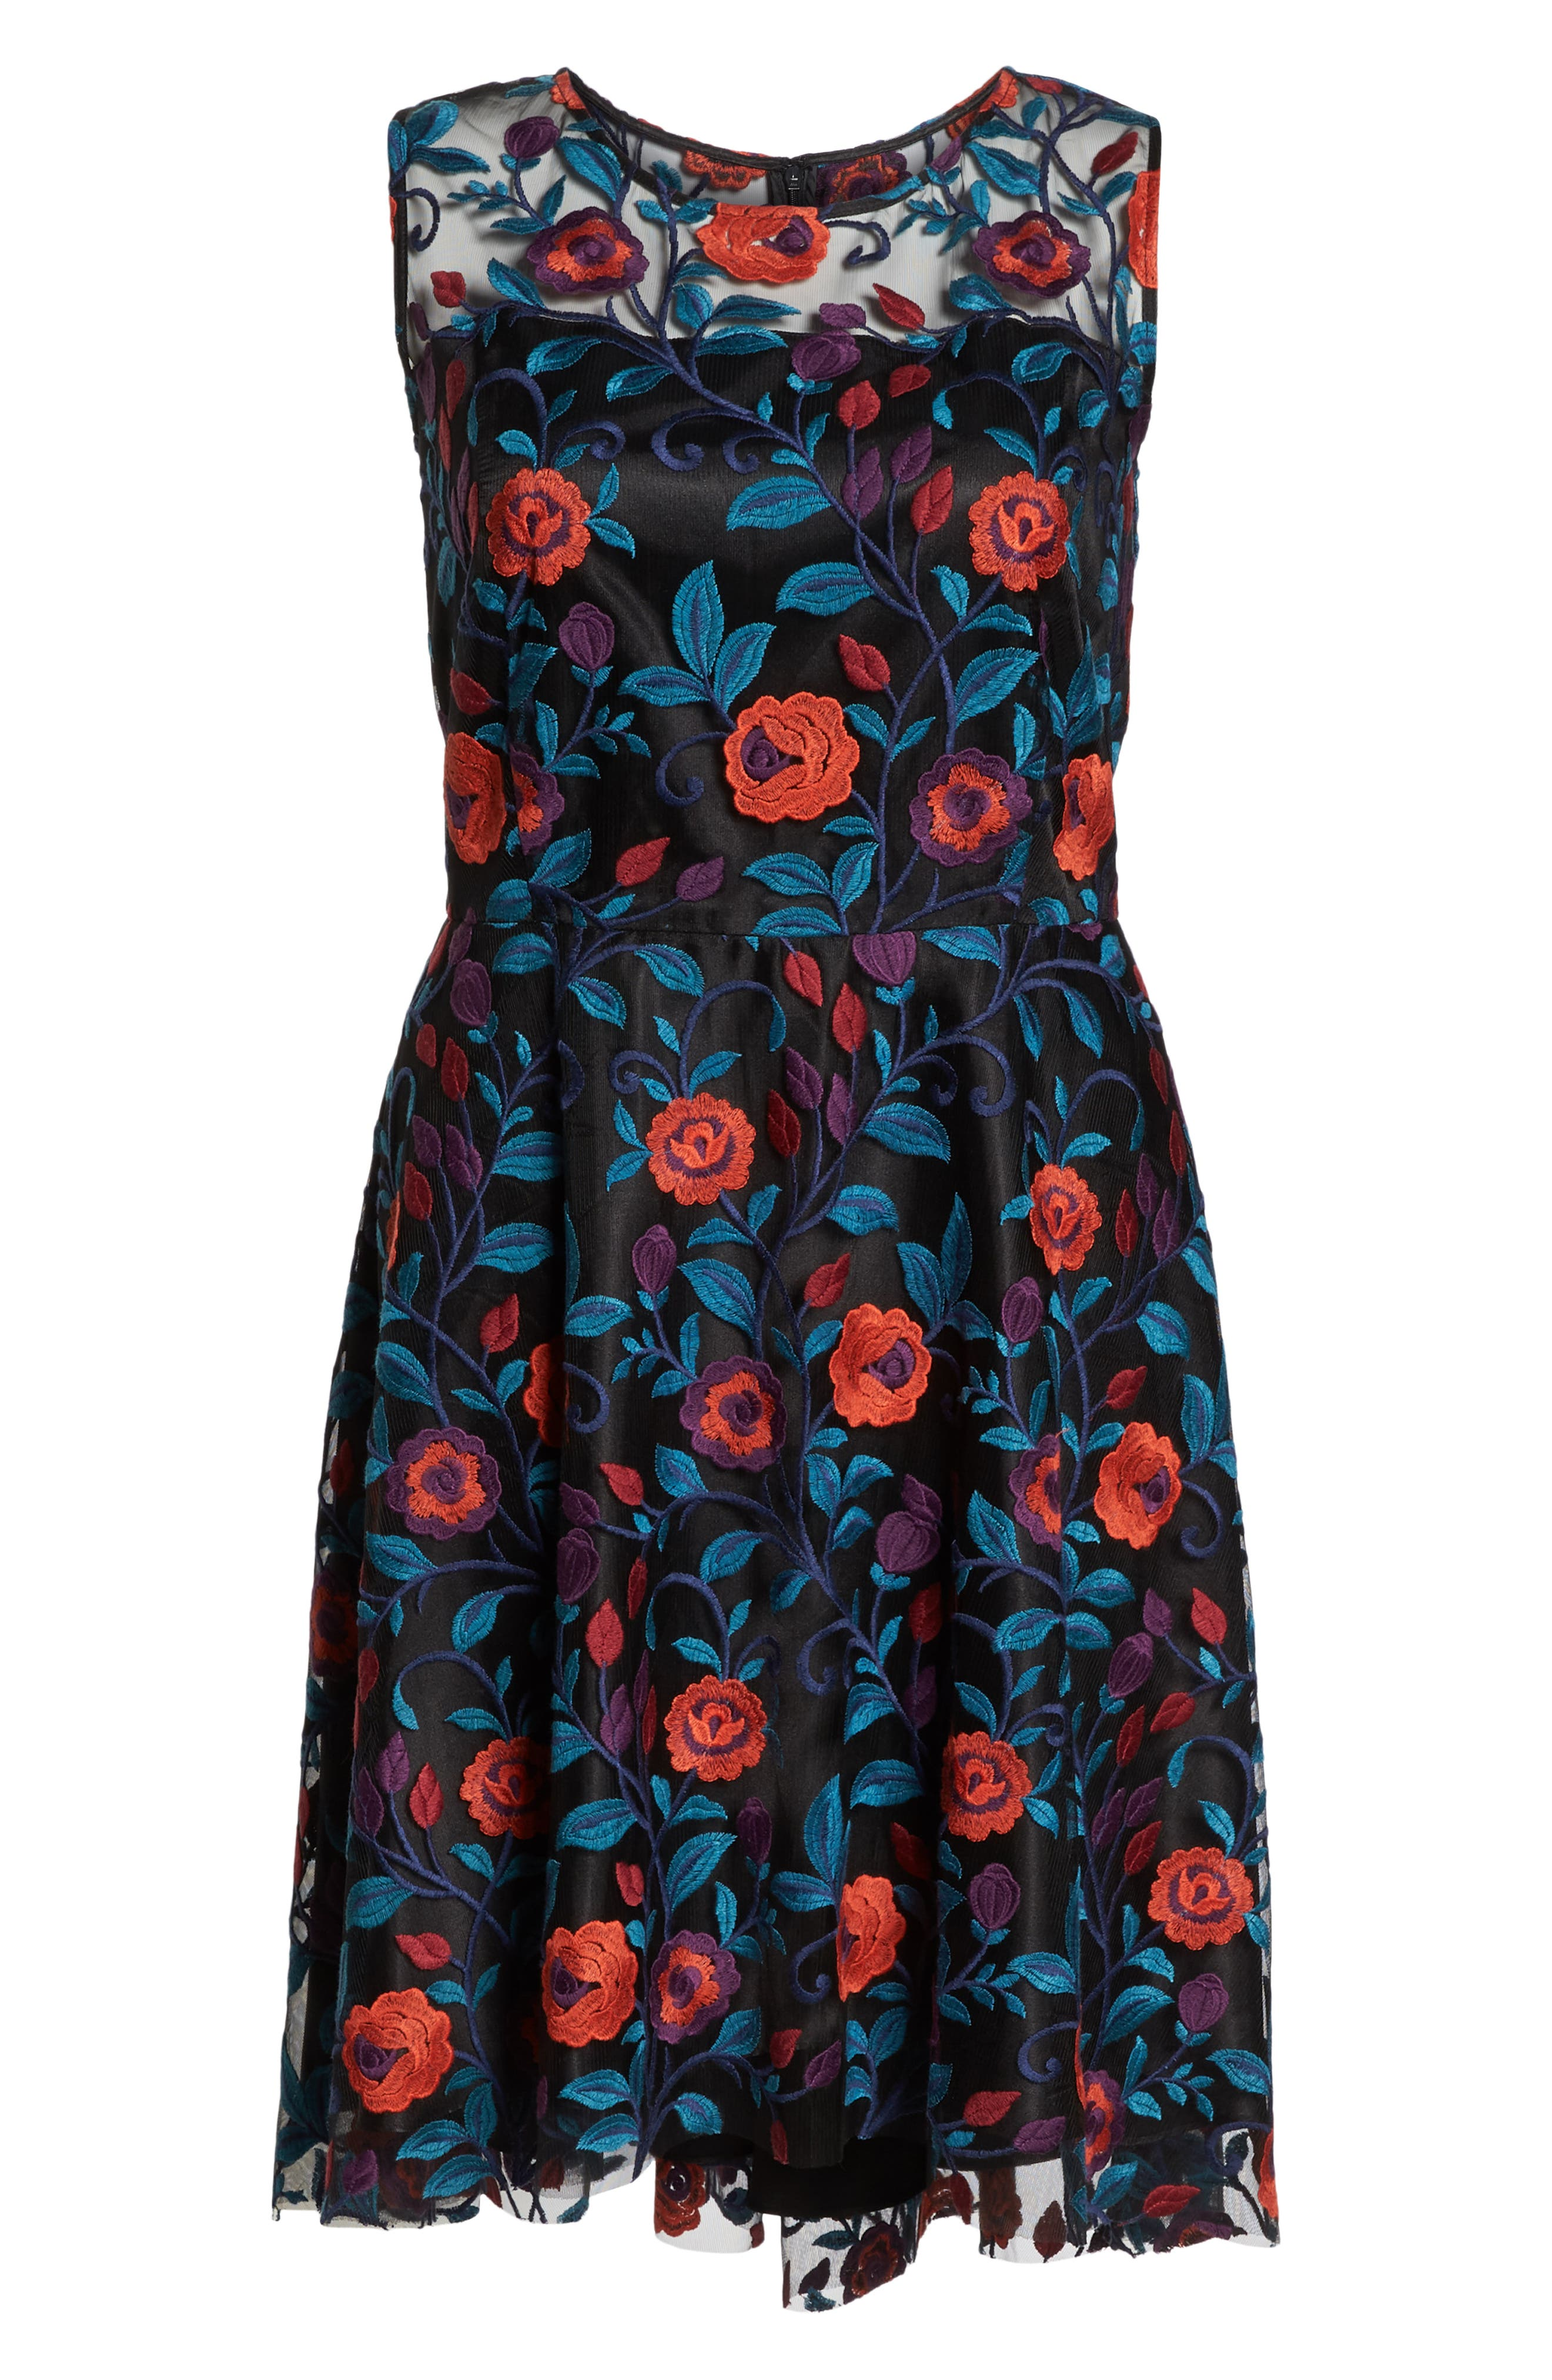 Floral Embroidery Fit and Flare Dress,                             Alternate thumbnail 7, color,                             BLACK/ TEAL/ RED